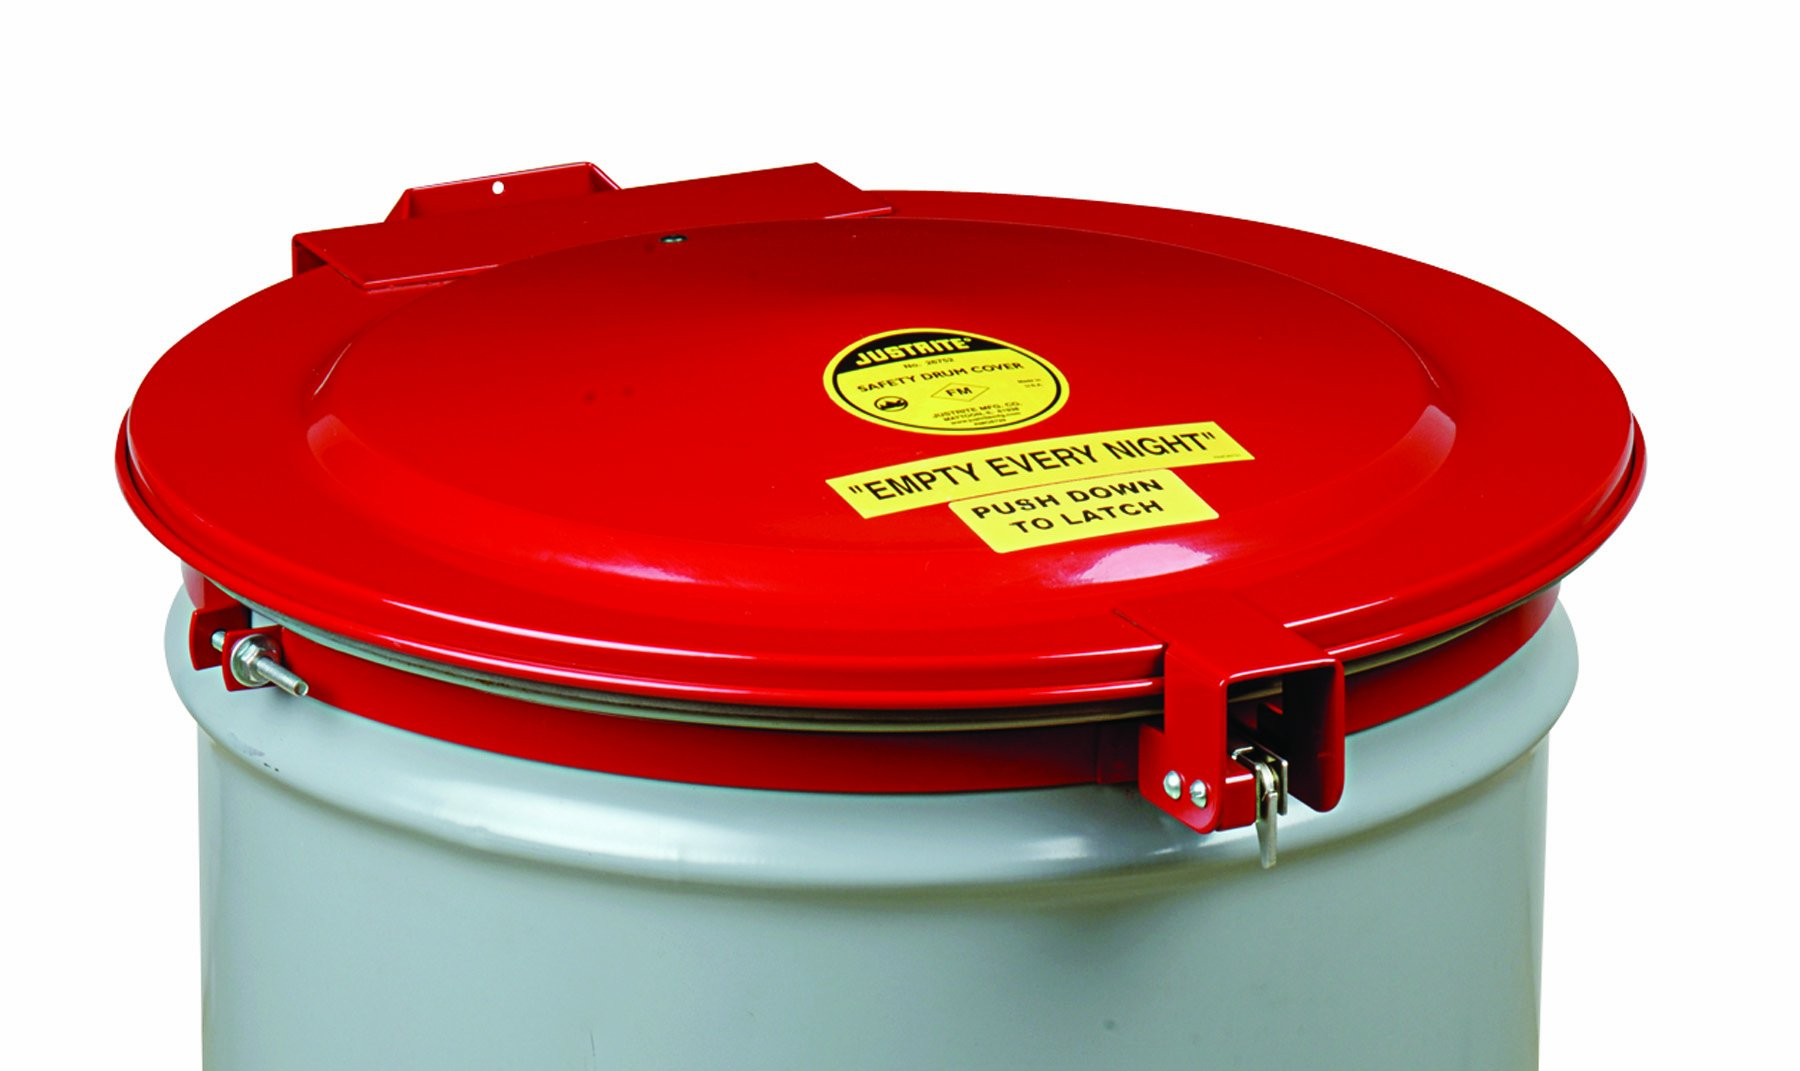 Justrite 26753 New Self-Latching Safety Drum Cover